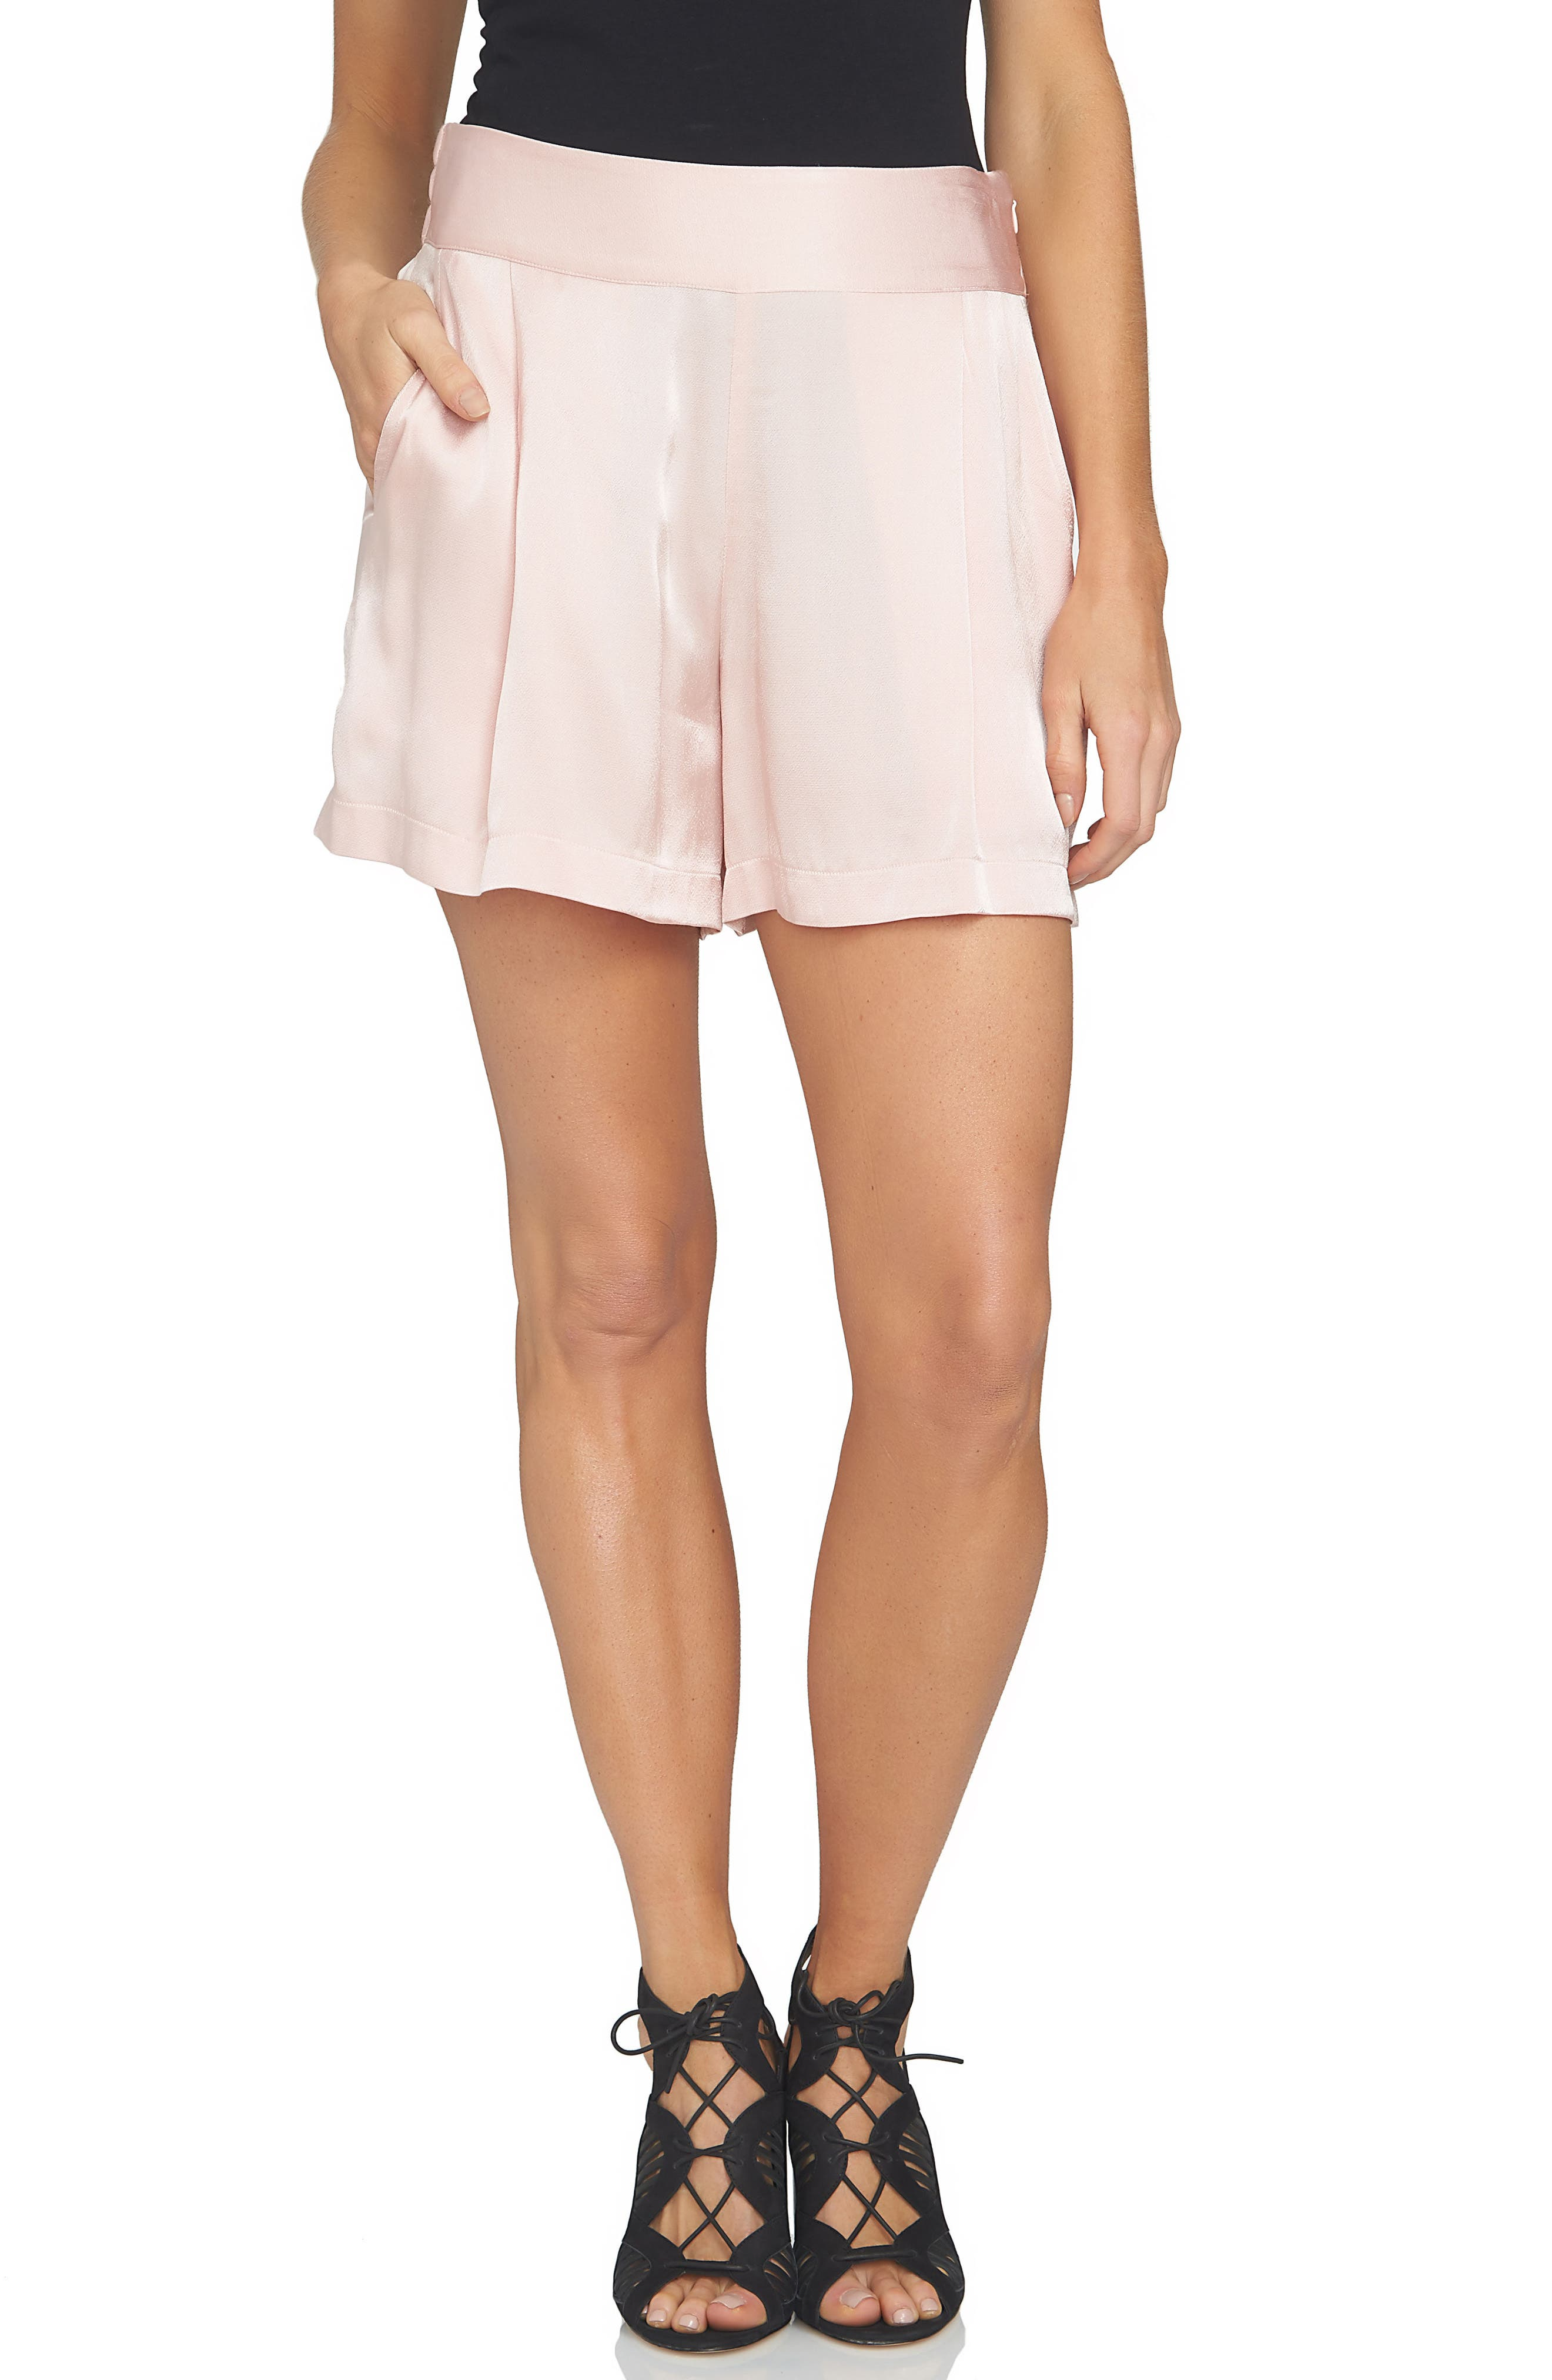 Alternate Image 1 Selected - 1.STATE High Waist Drapey Shorts